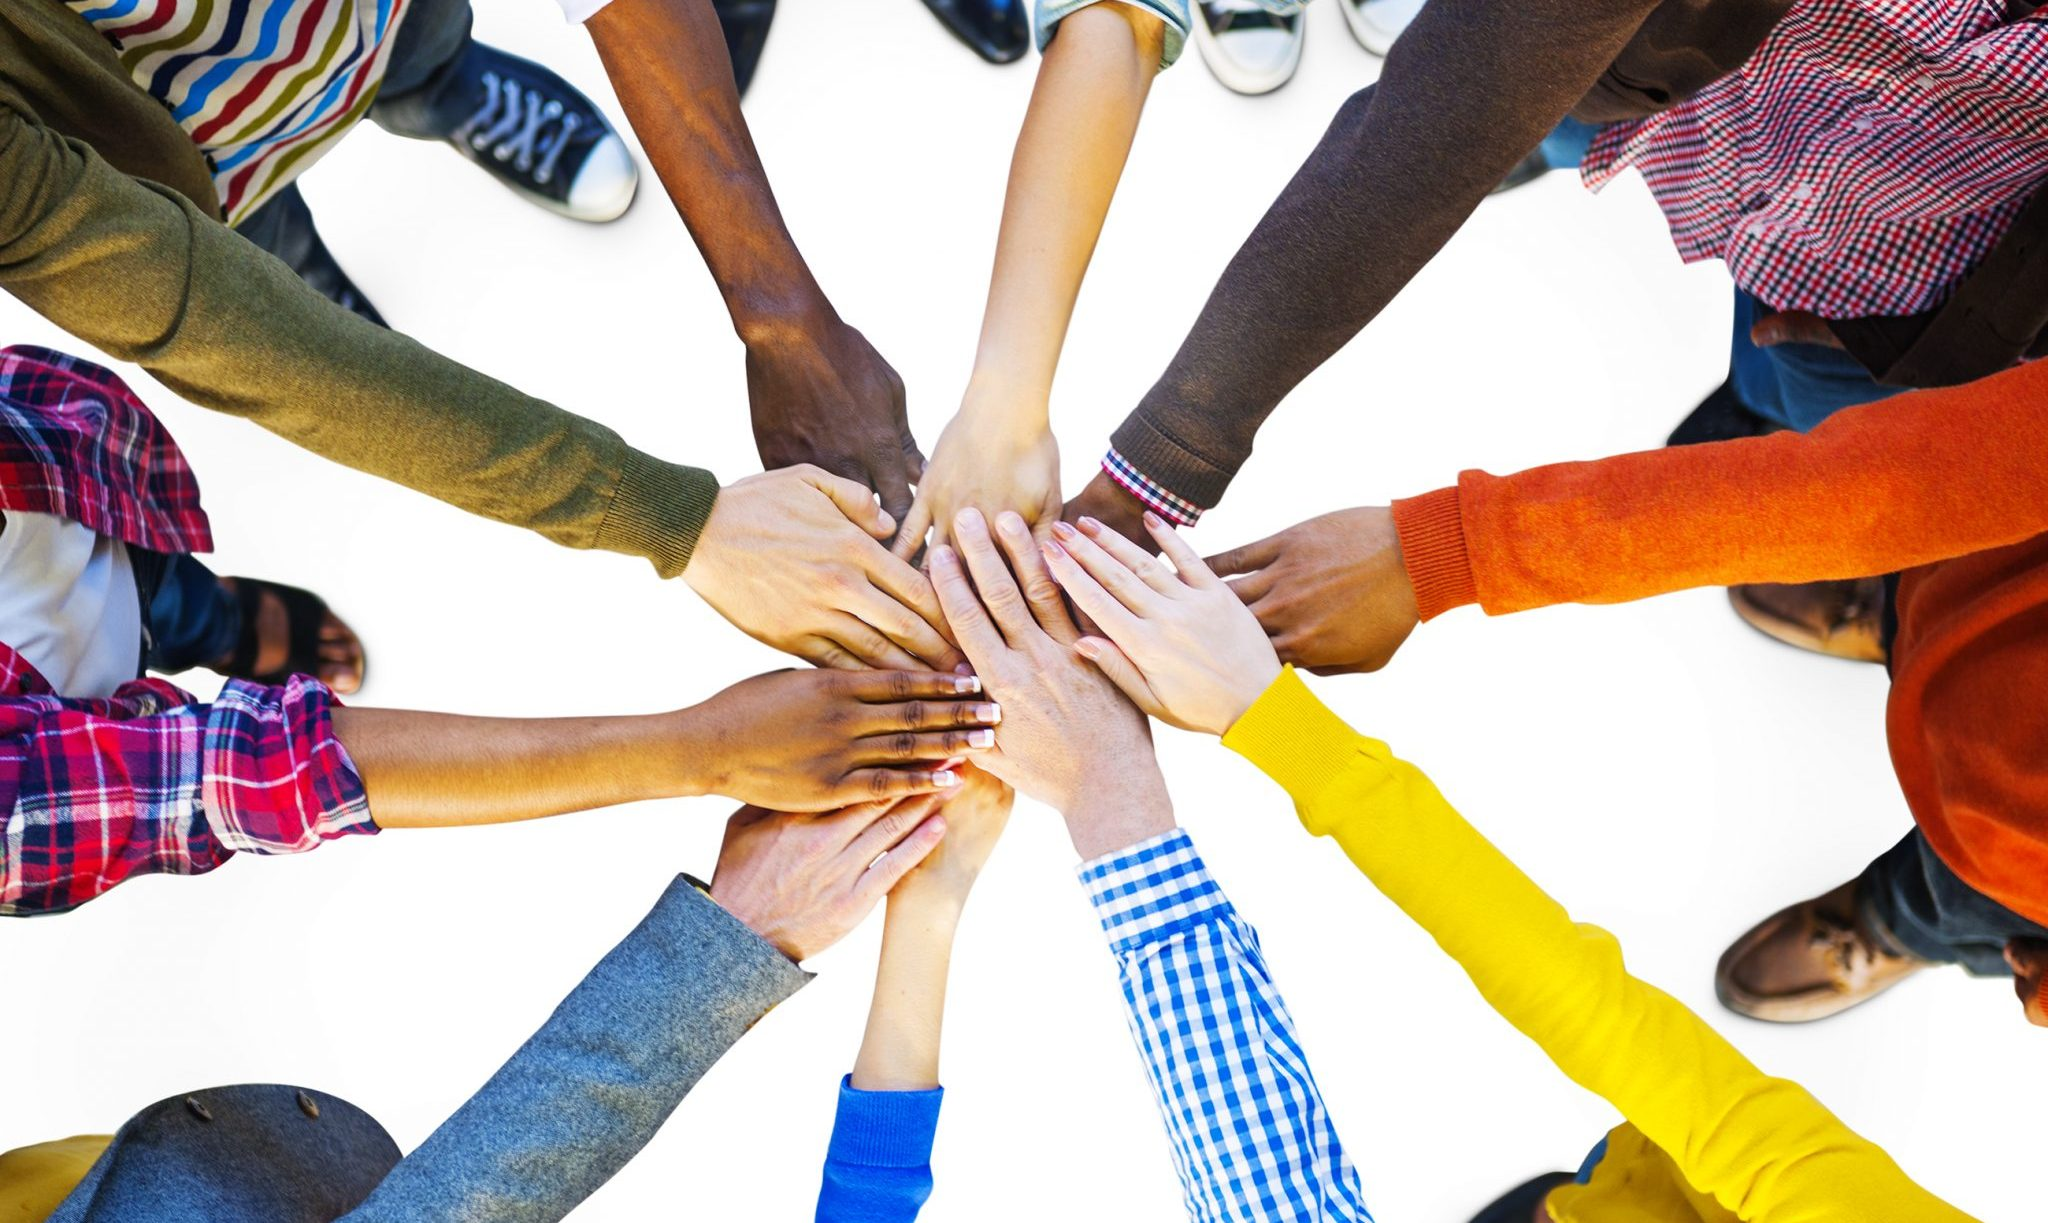 Group of Diverse Multiethnic People reaching hands in to have a group high five